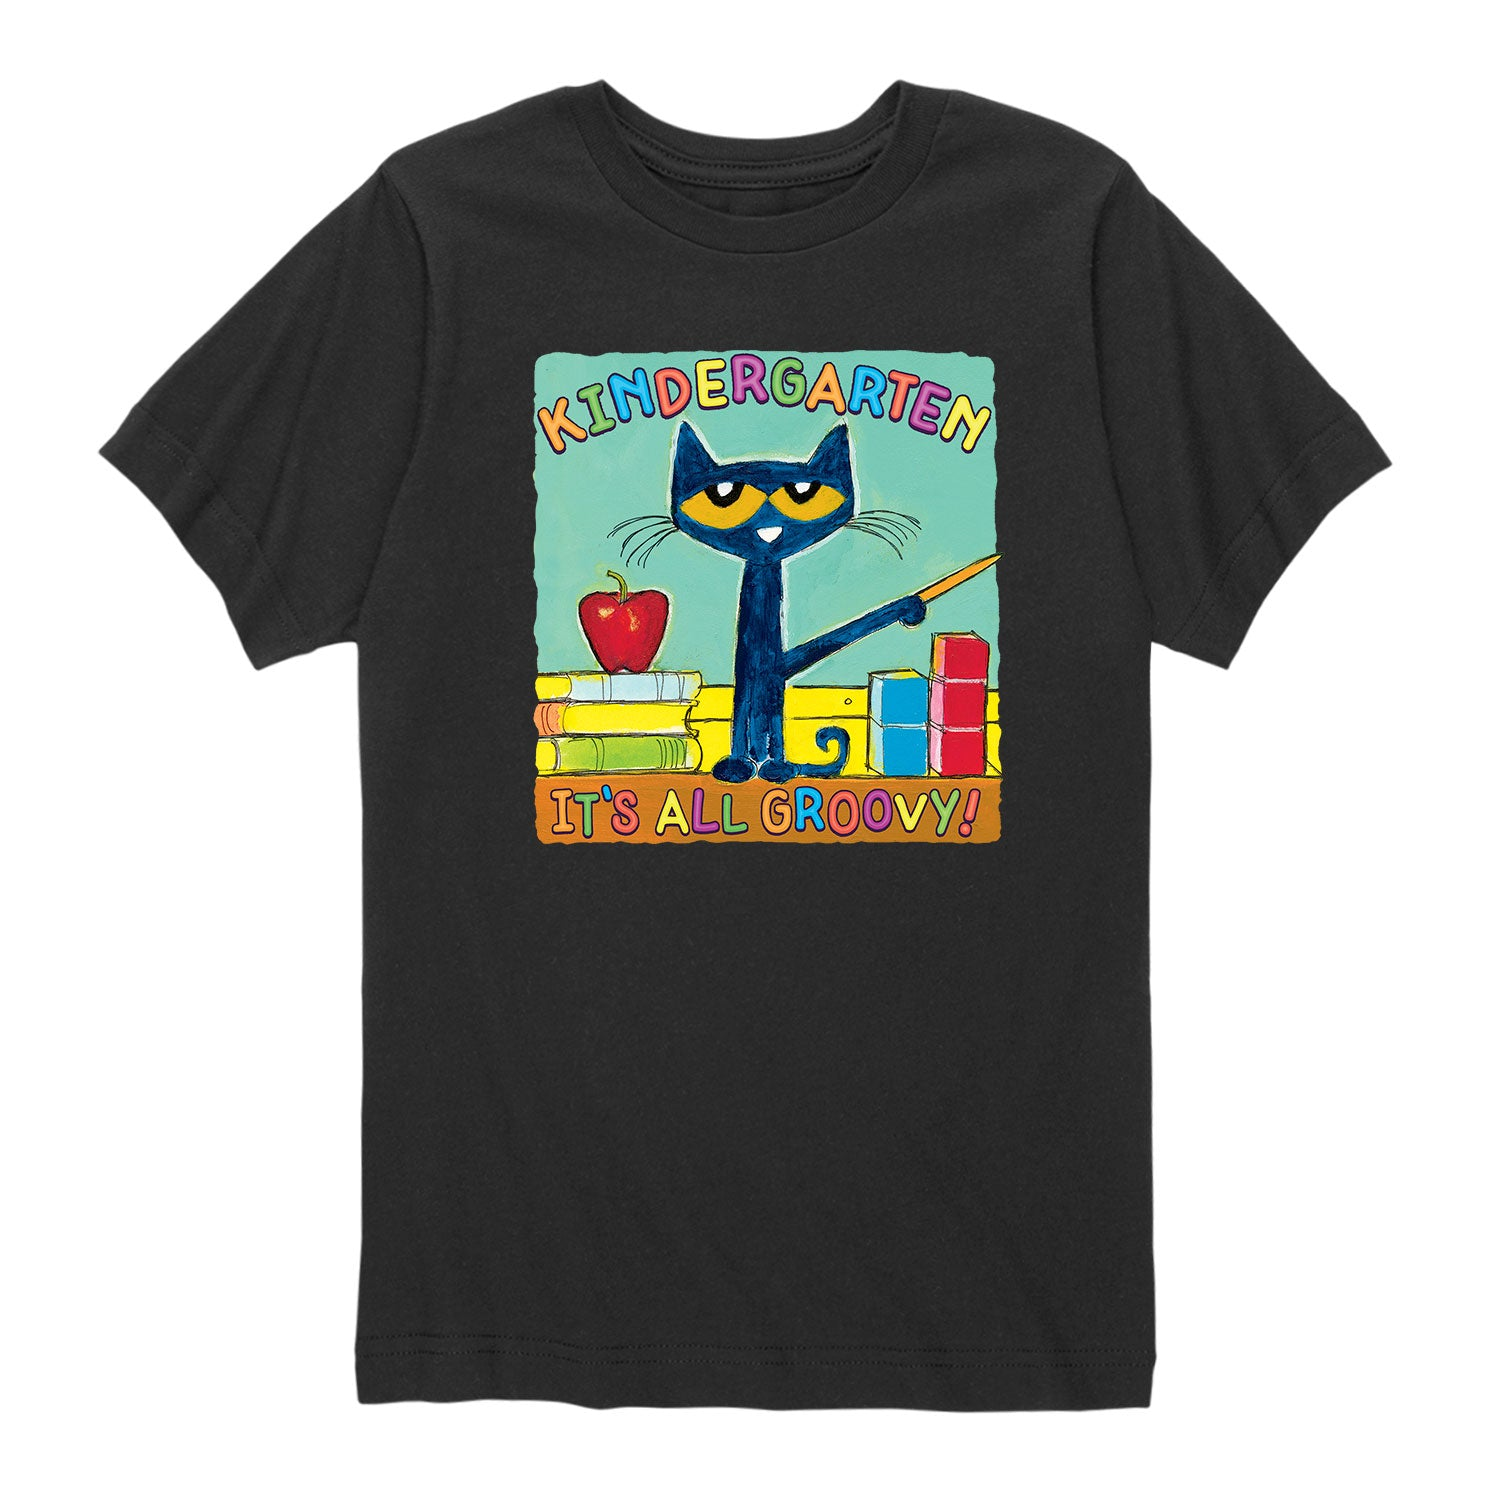 Kindergarten It's All Groovy - Youth & Toddler Short Sleeve T-Shirt